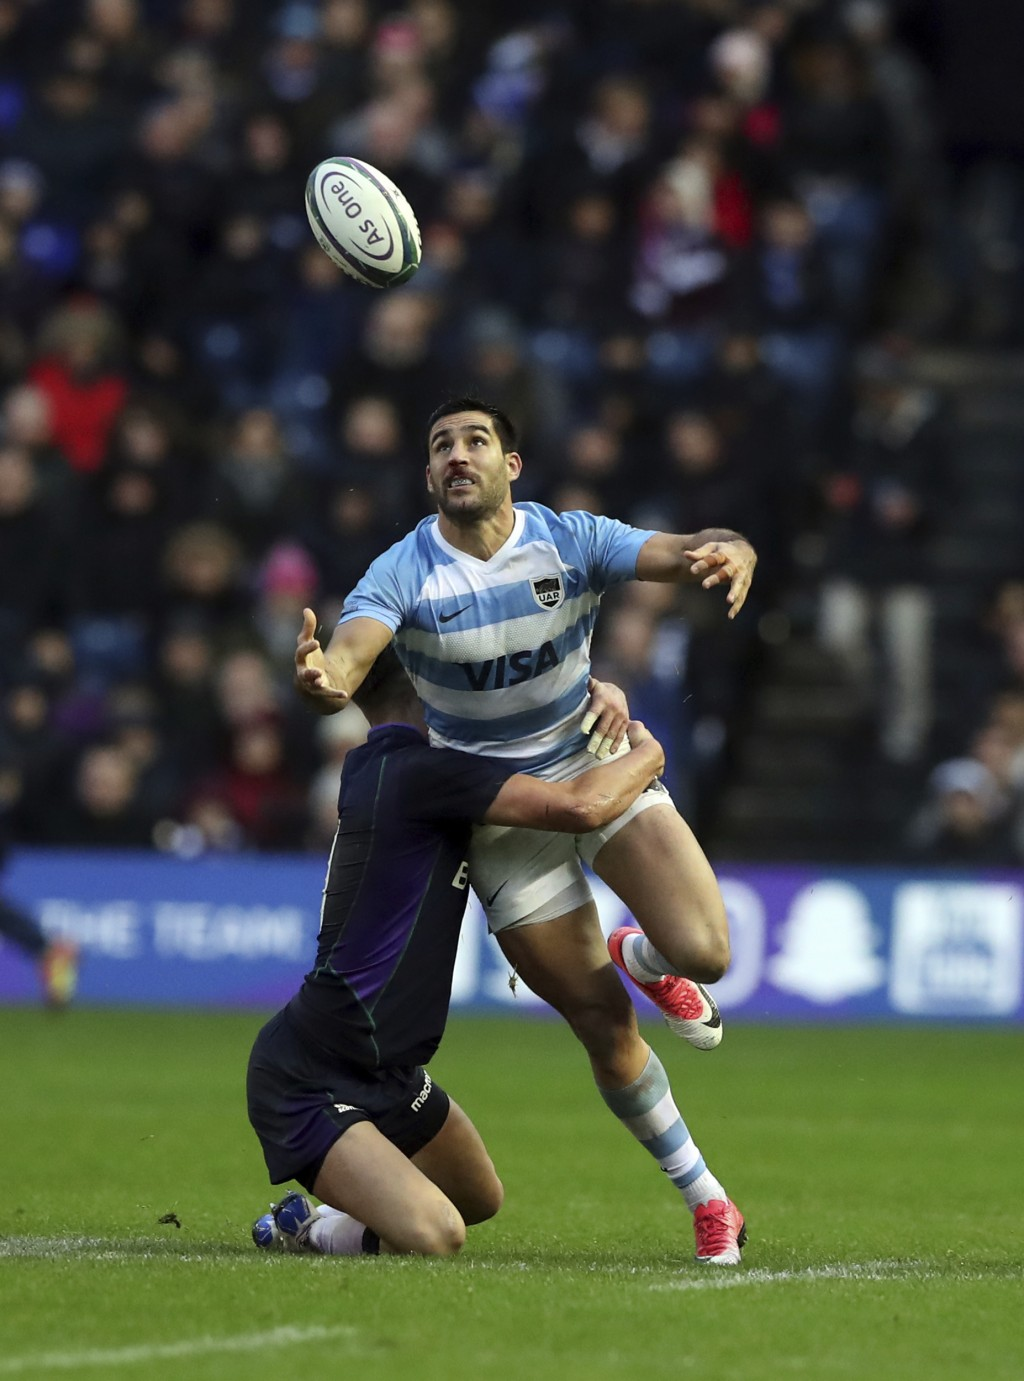 Argentina's Bautista Ezcurra, right, is tackled by Scotland's Adam Hastings during the rugby union international match between Scotland and Argentina